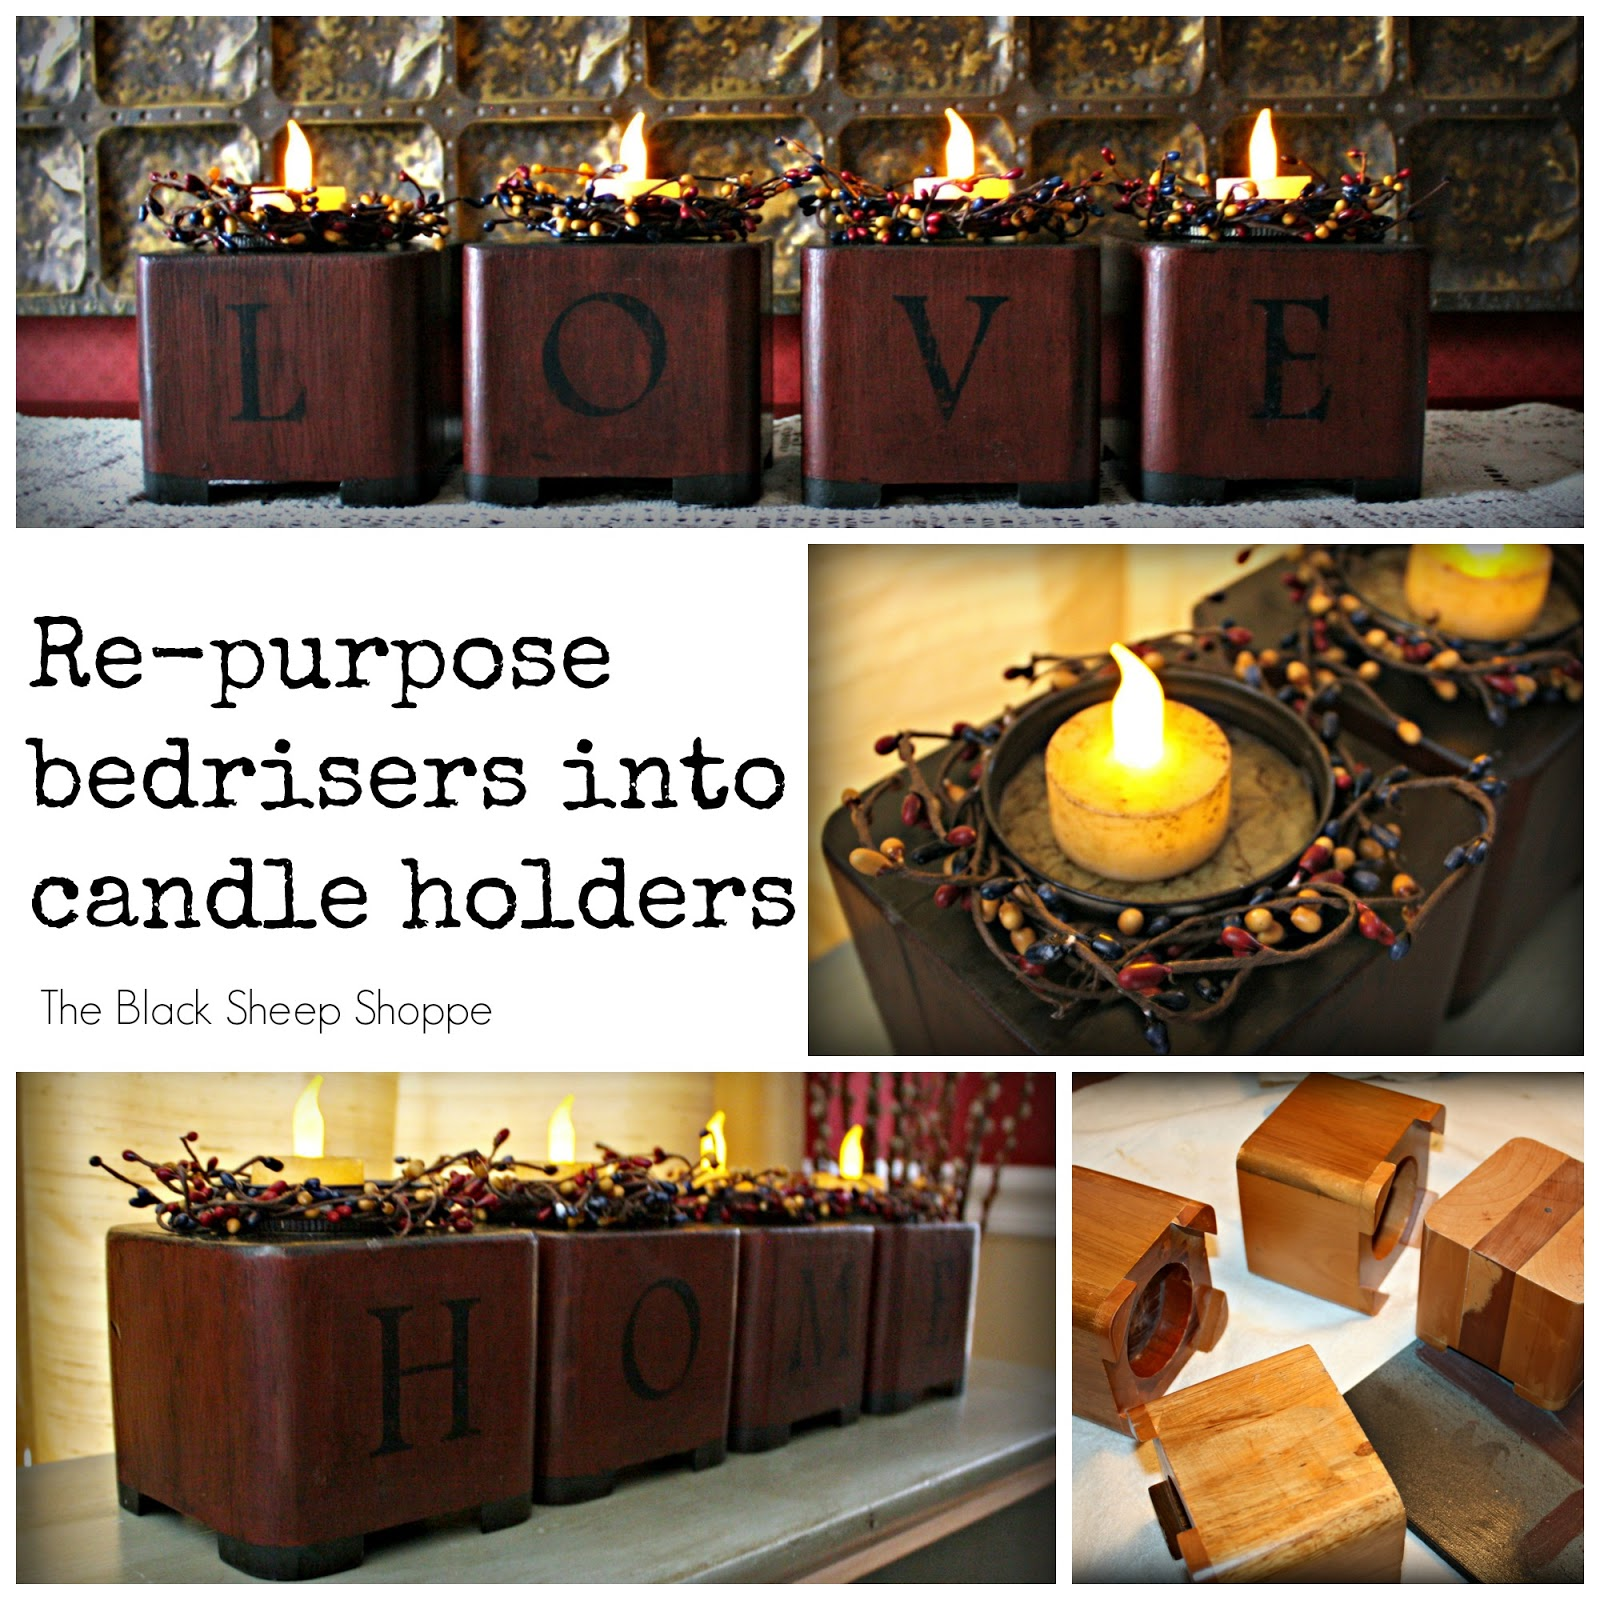 Bed risers re-purposed into candle holders